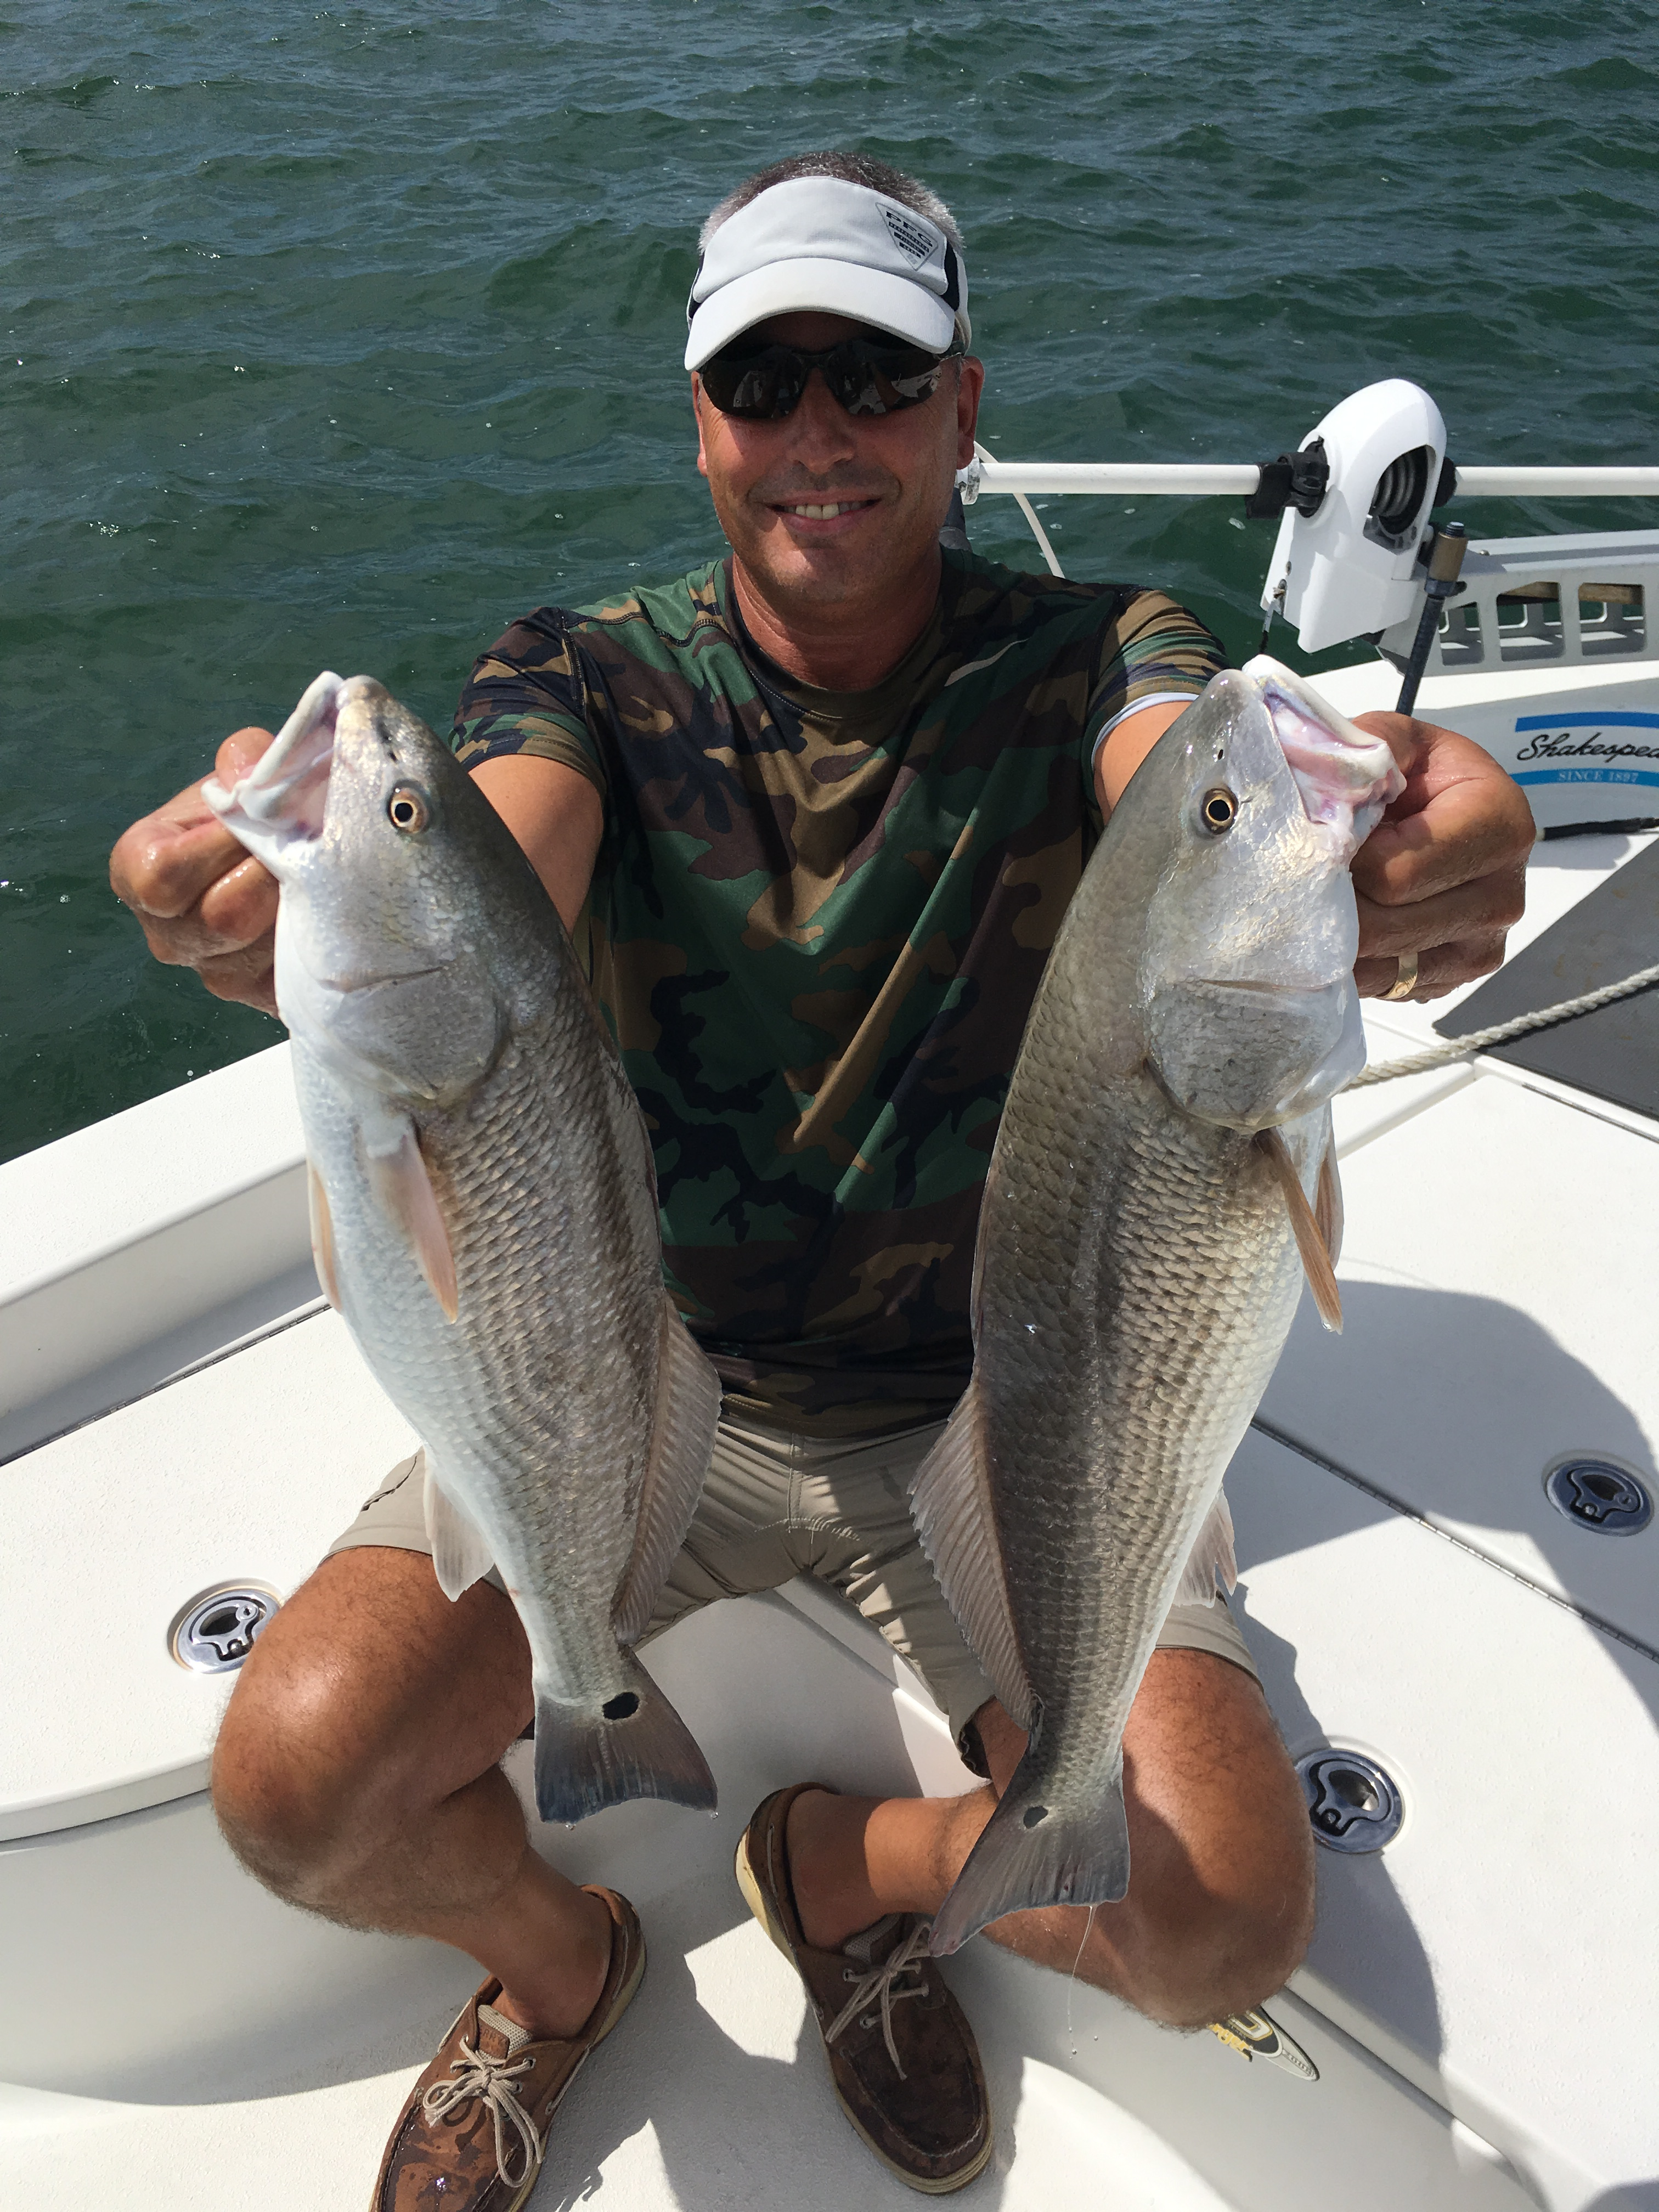 Fishing report archive wrightsville beach nc area for Wrightsville beach fishing report